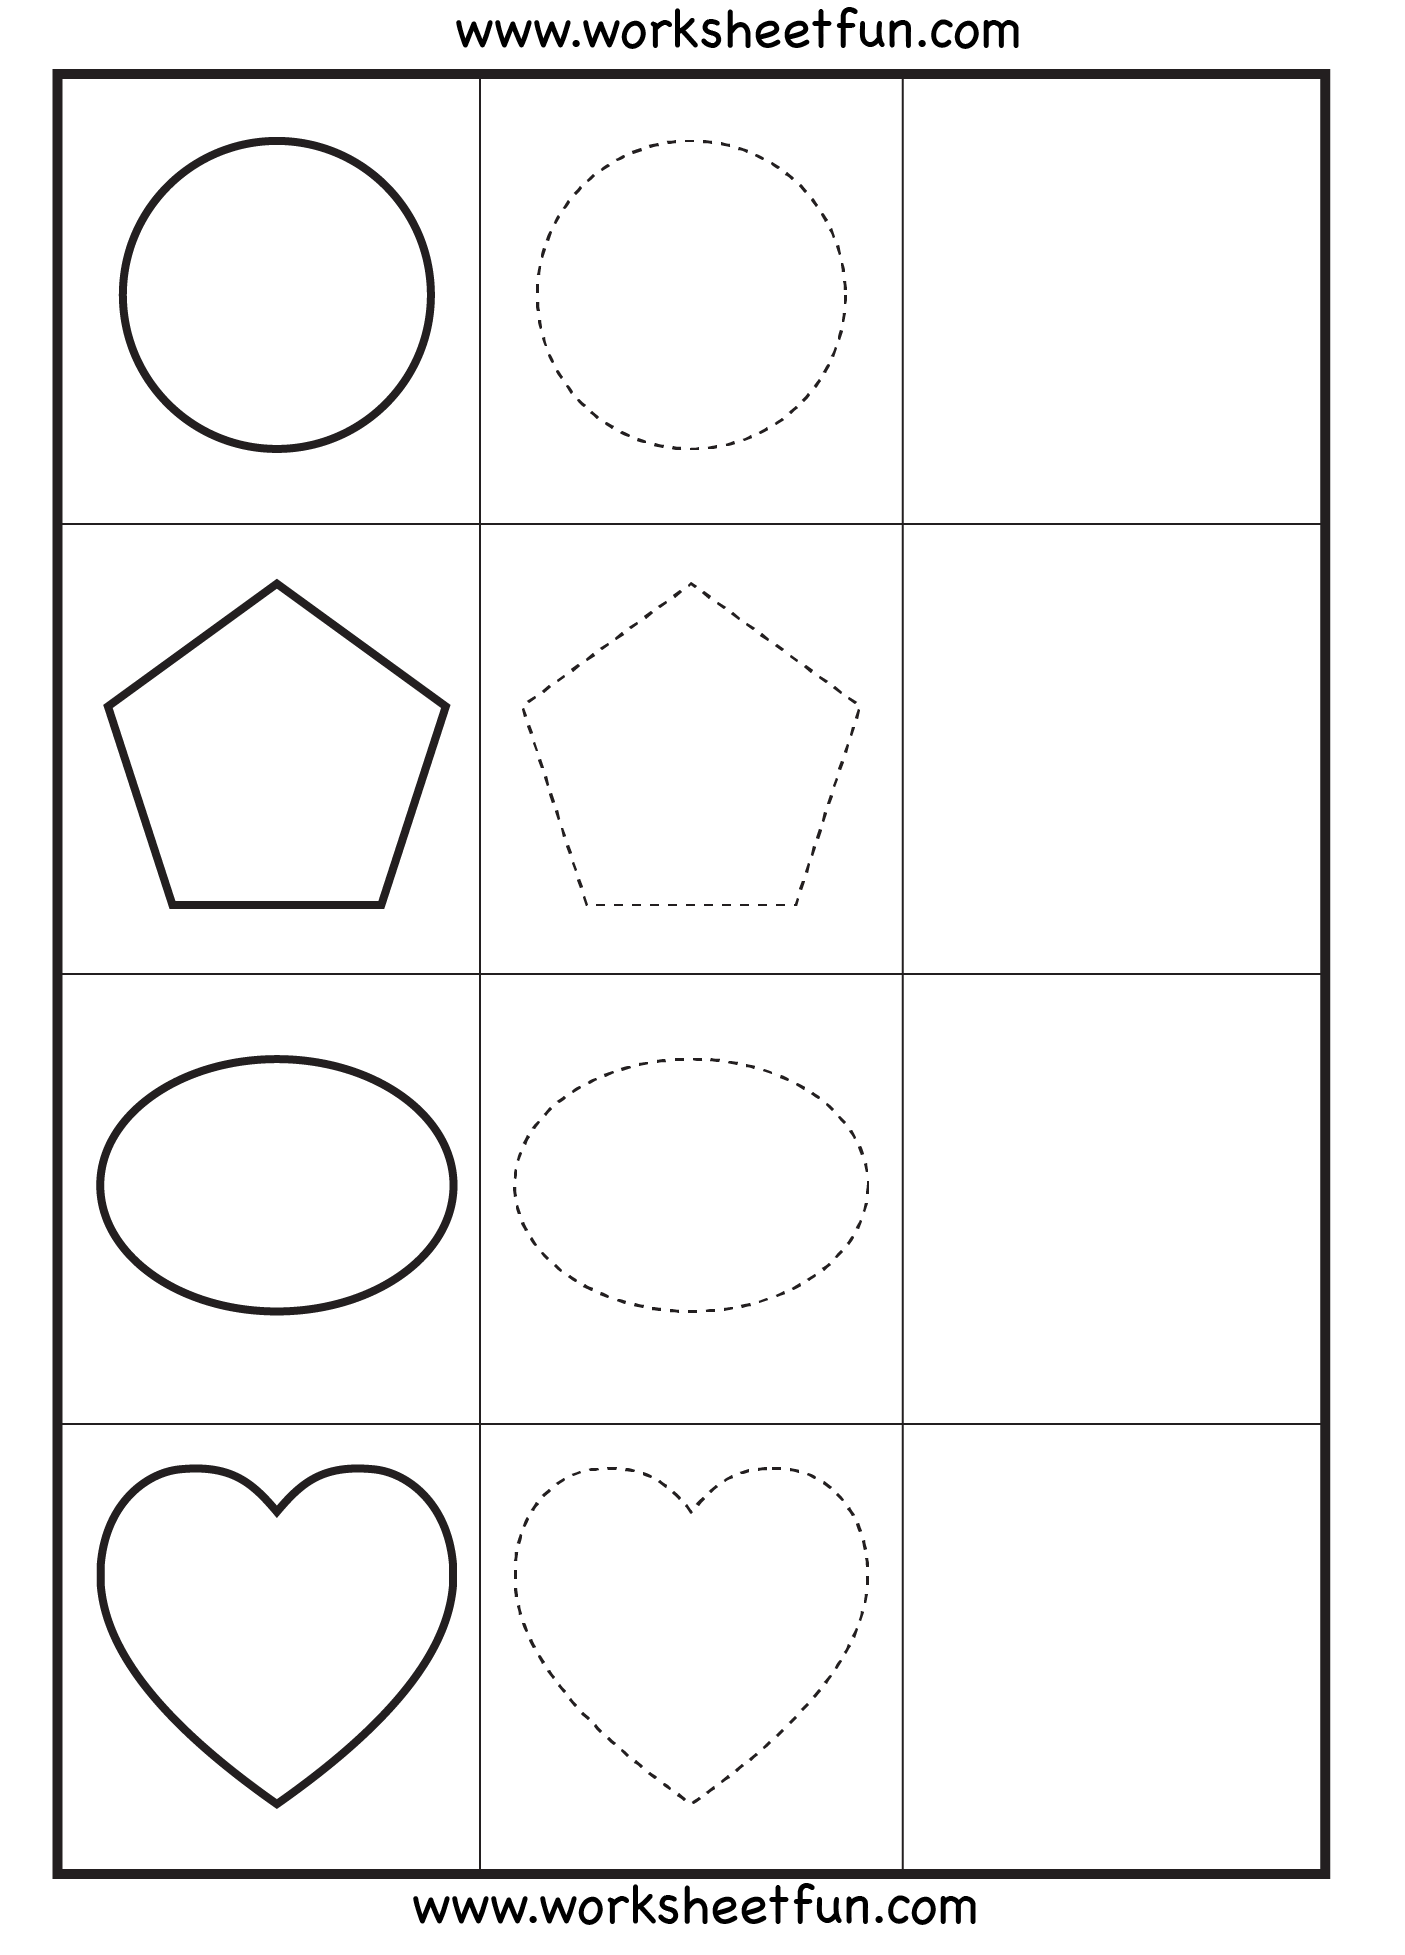 Printable Number Worksheet For 3 Year Olds